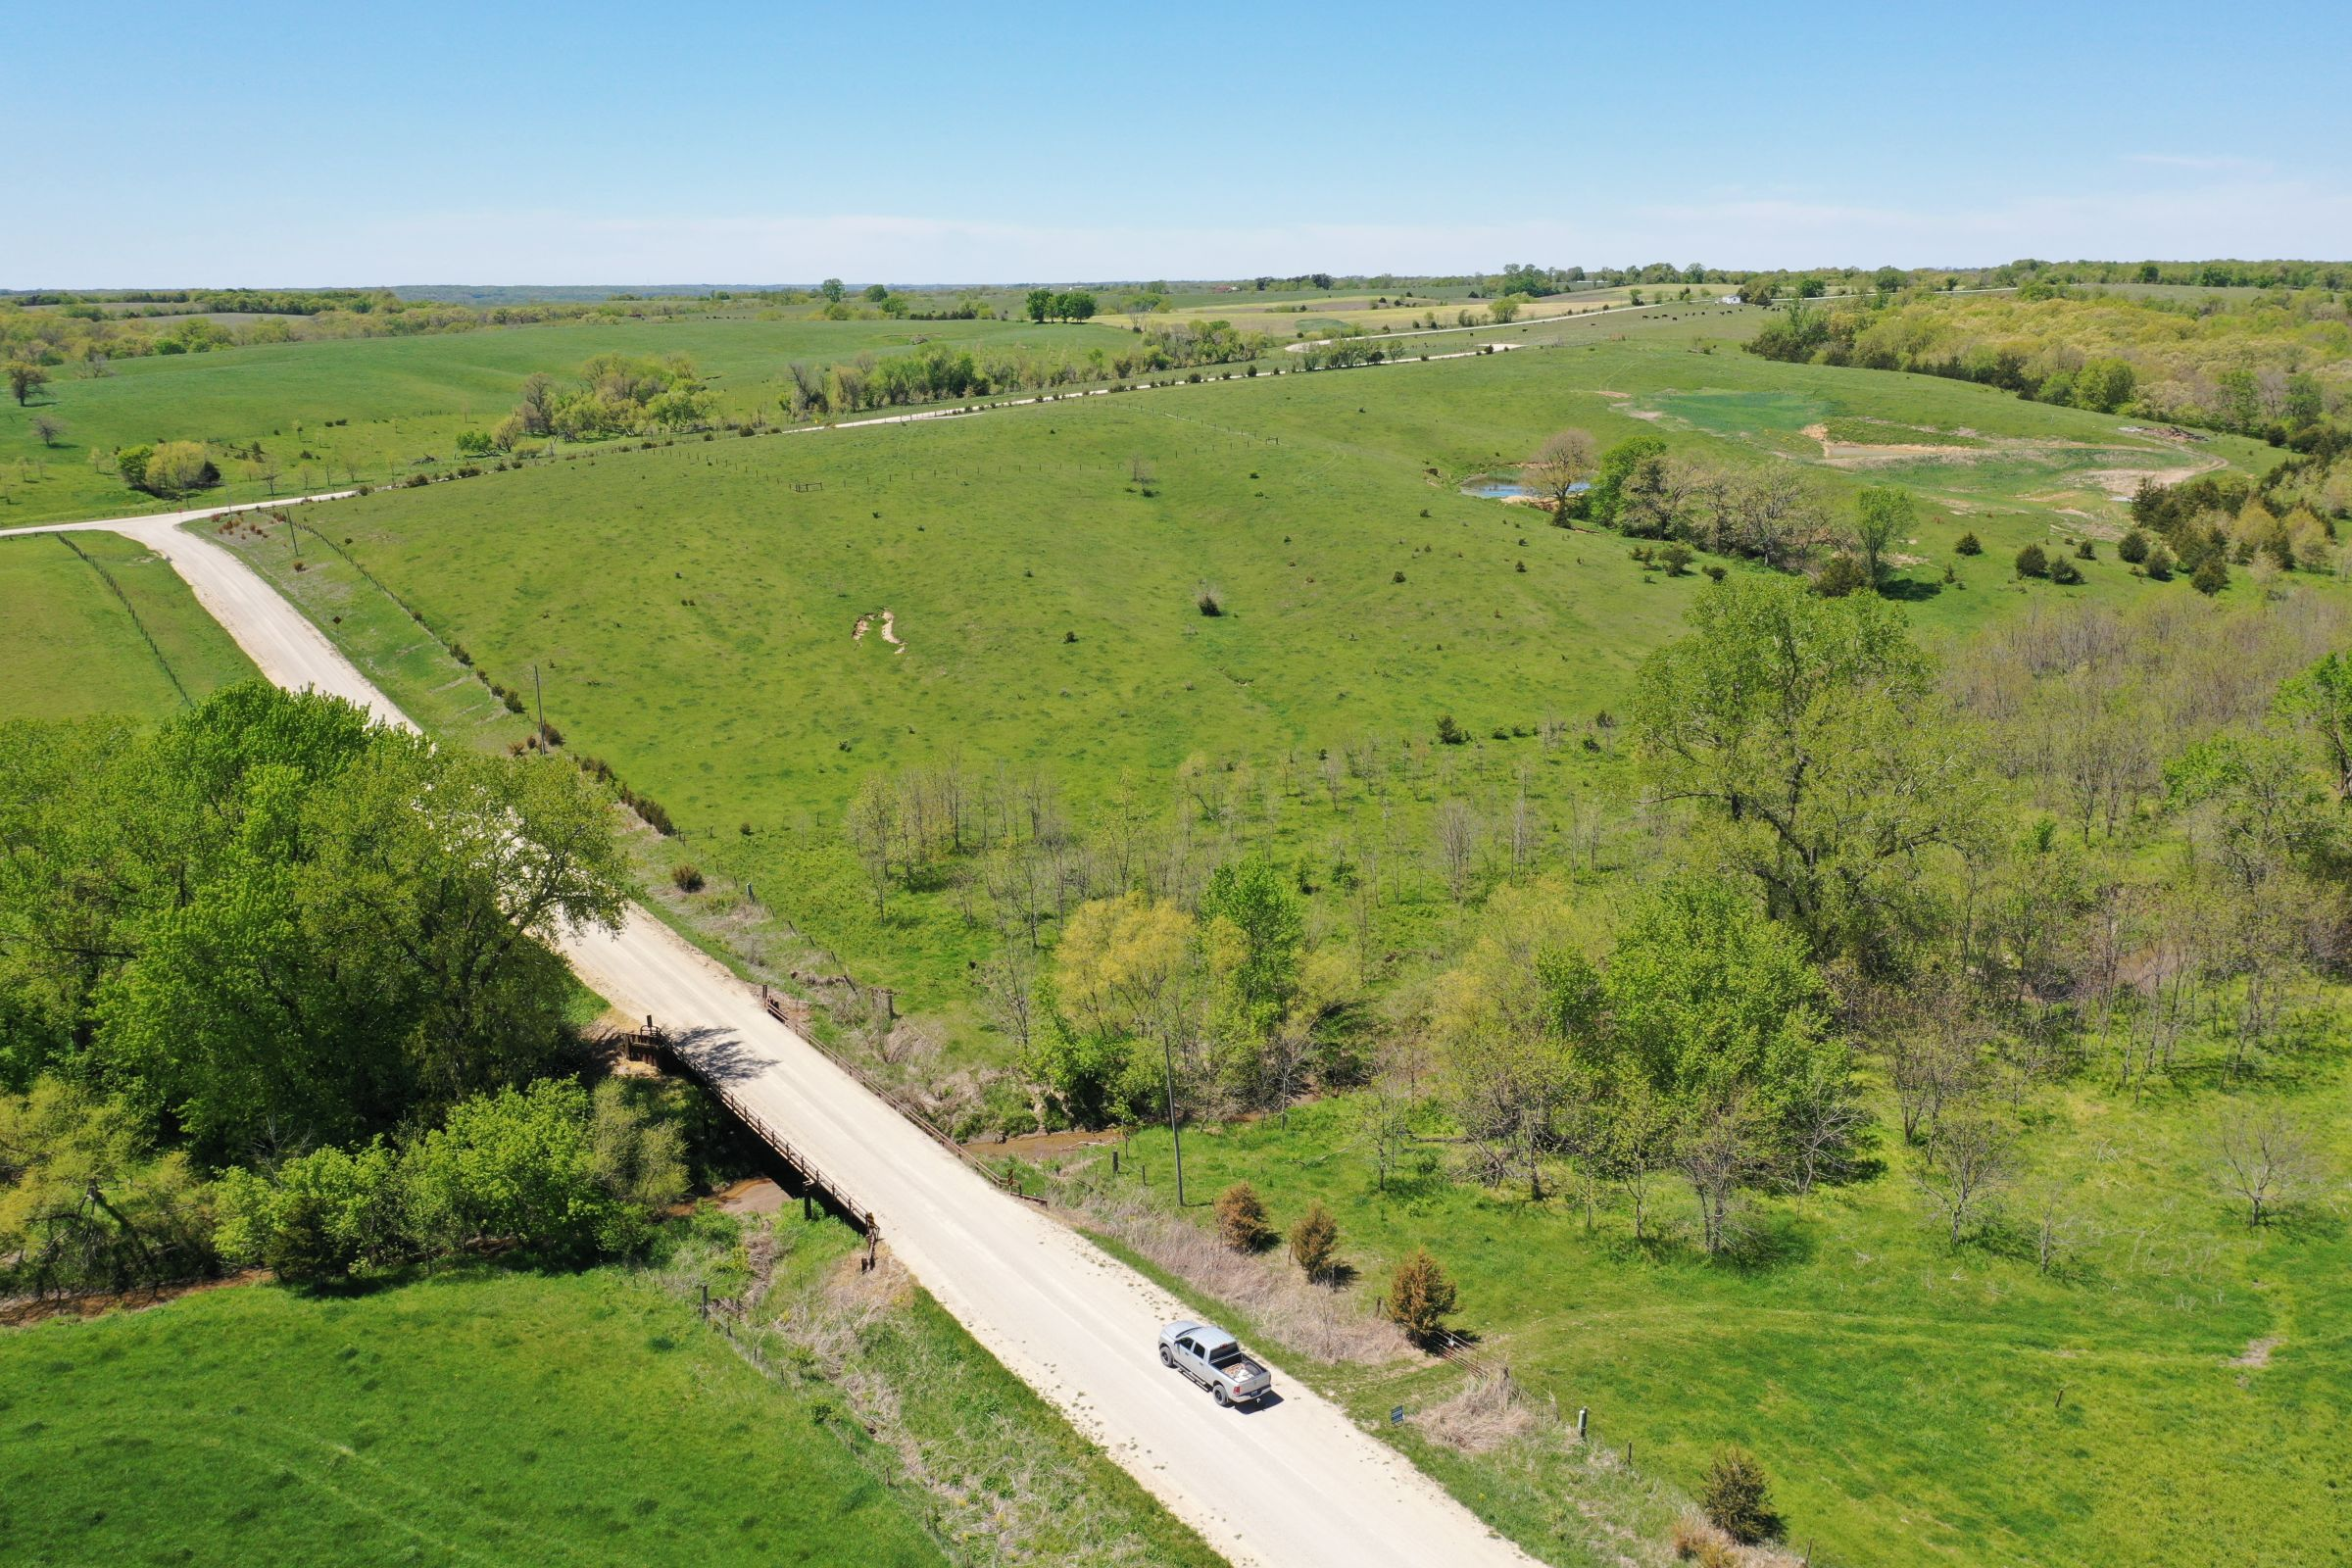 land-decatur-county-iowa-99-acres-listing-number-15525-4-2021-05-14-172511.JPG